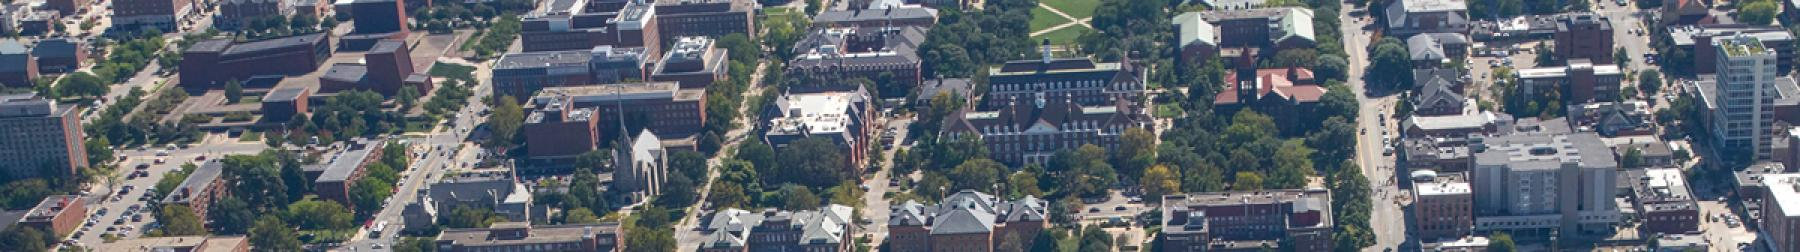 Aerial of North campus looking north to south including the Beckman Institute and the Bardeen Quadrangle